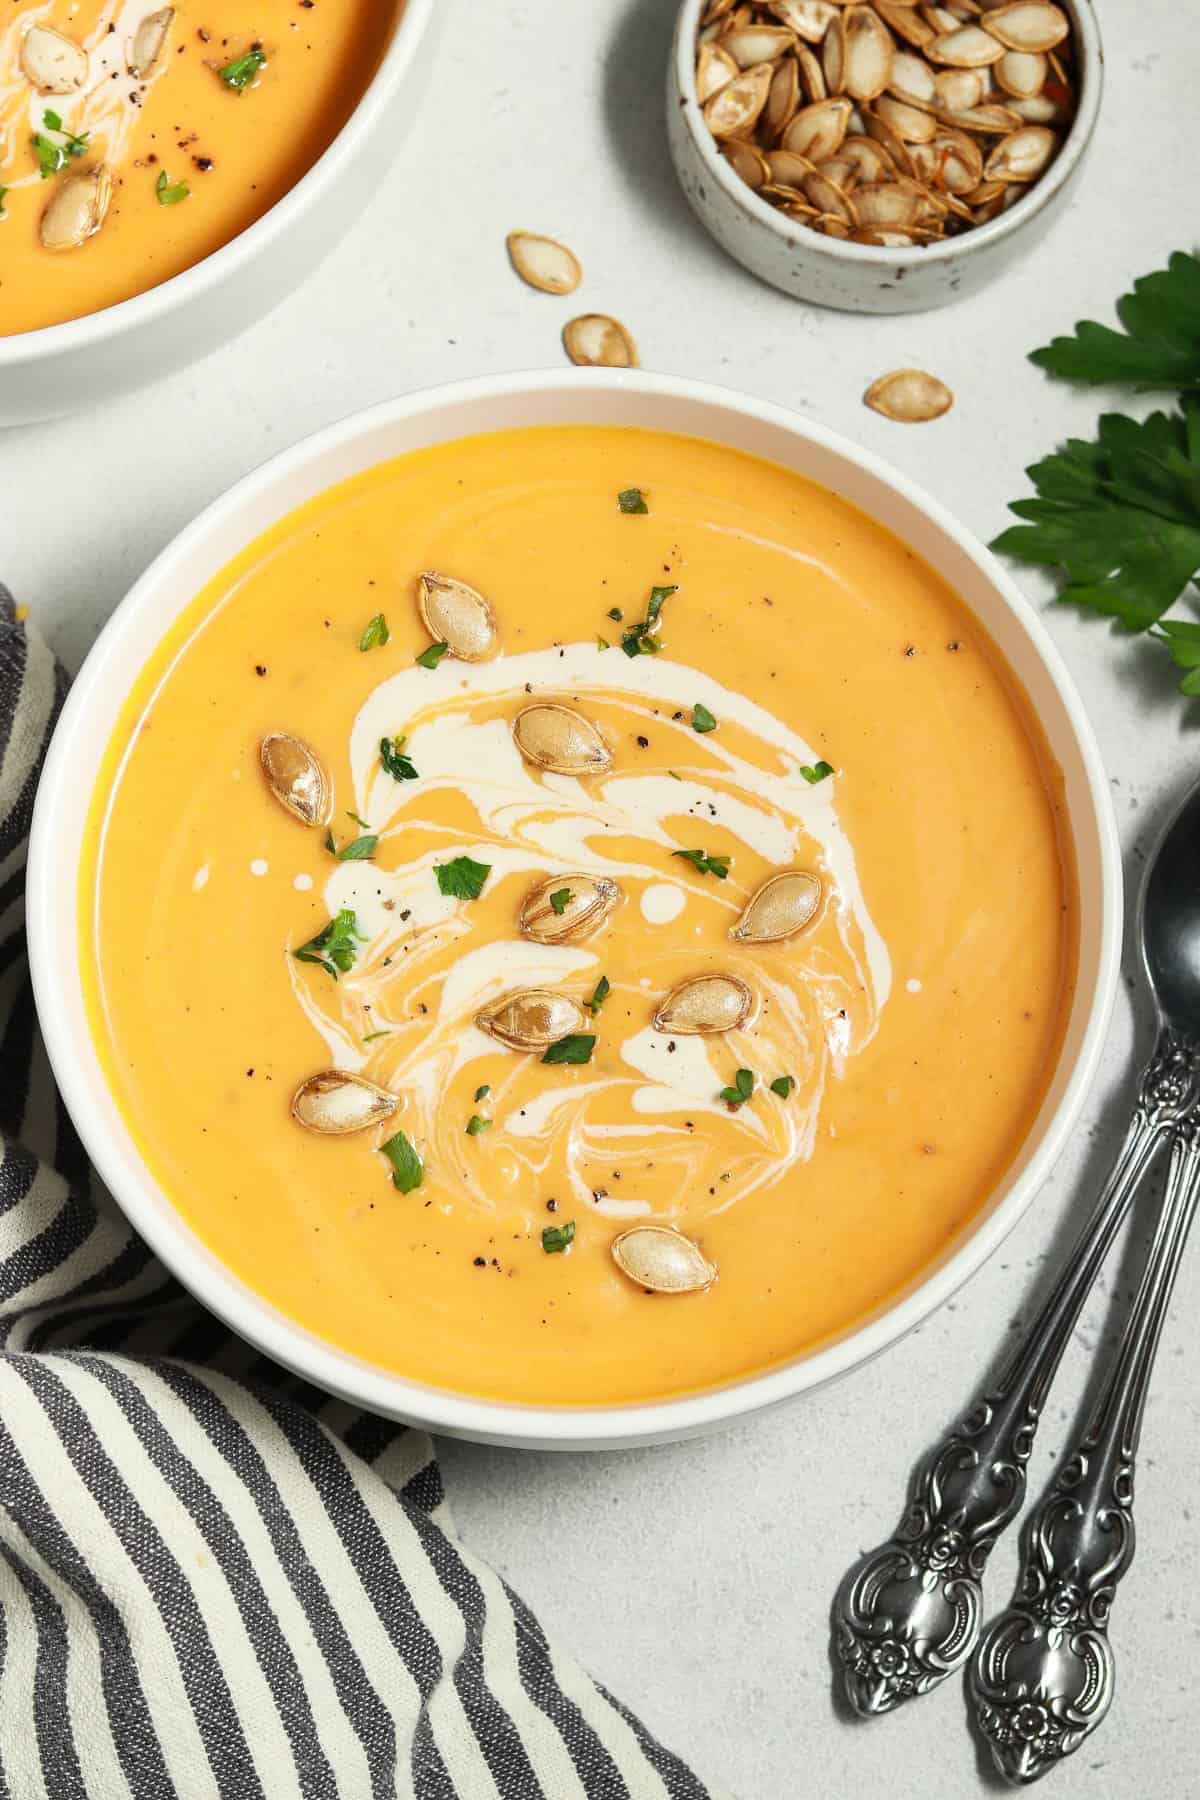 Overhead view of fully cooked butternut squash soup in a white bowl. Seeds and parsley on top.